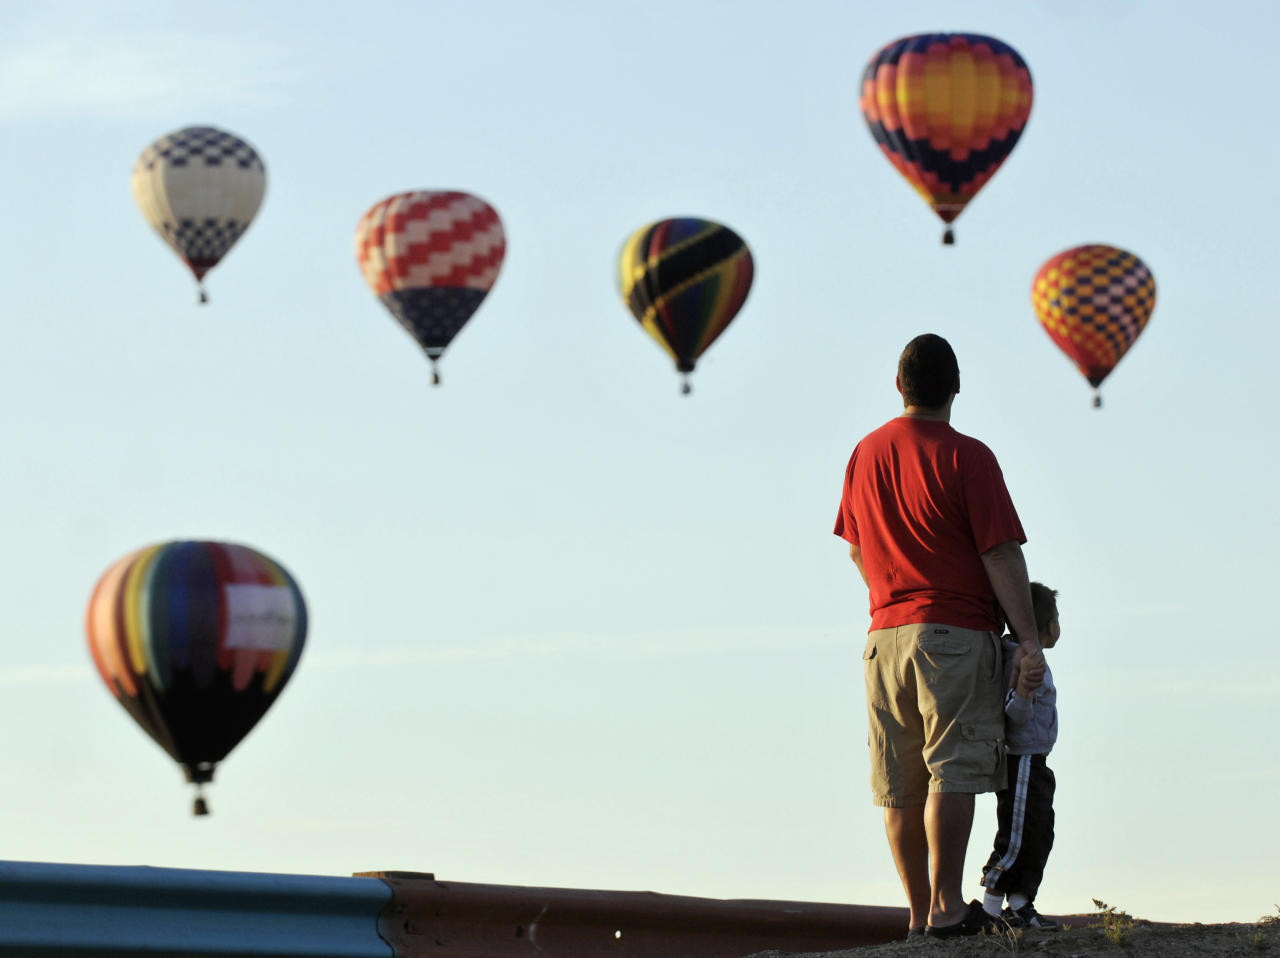 "Matt Brenner and his son Grey, 3, of Rio Rancho, watch mass ascension just north of Balloon Fiesta Park, on the first morning of the Albuquerque International Balloon Fiesta, Saturday, Oct. 2, 2010, in Albuquerque, N.M. ""There's lots of balloons,"" Grey said."